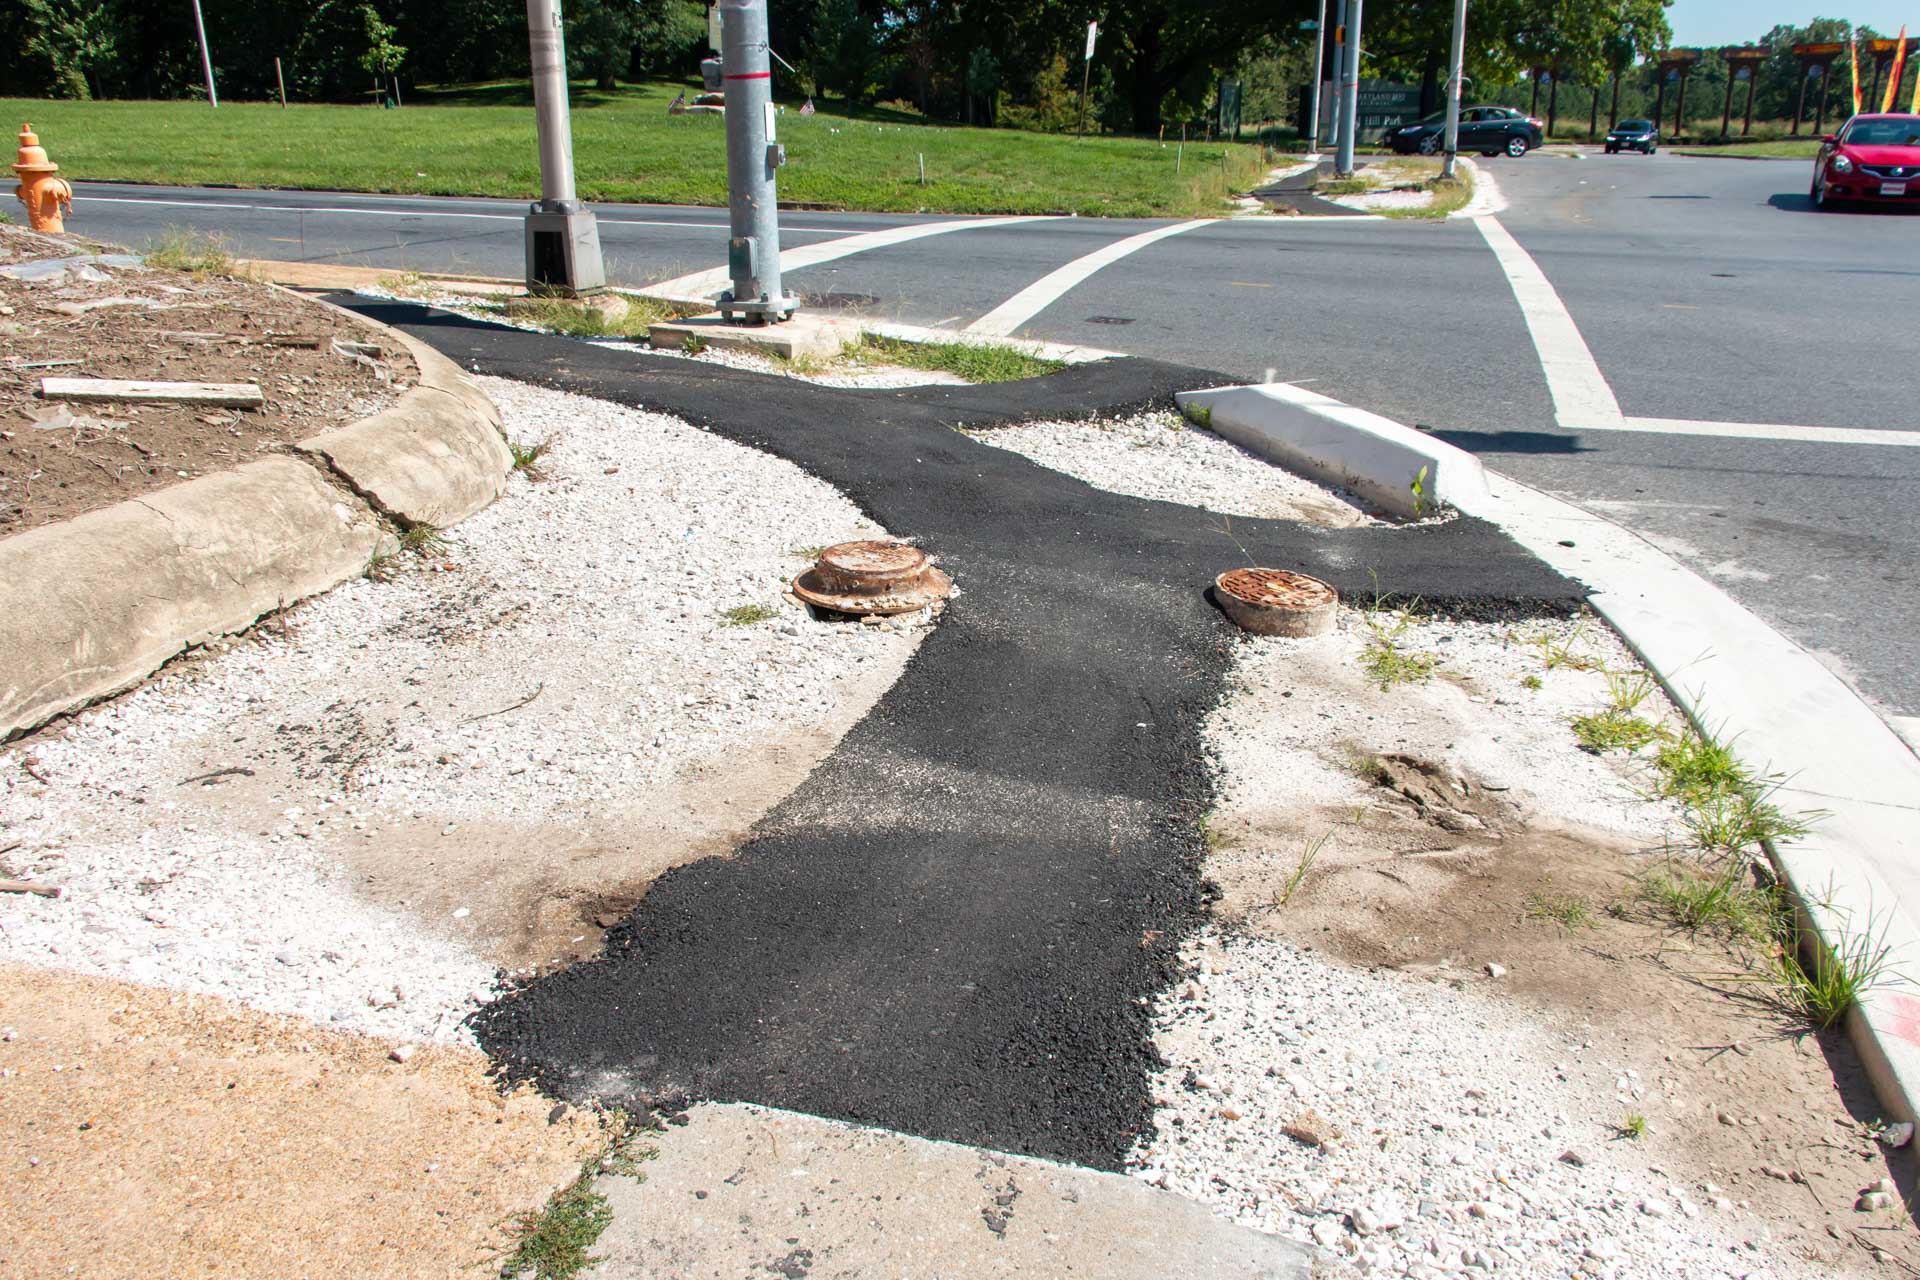 2016 removed sidewalks at Gwynns Falls Parkway and Auchentoroly Terrace